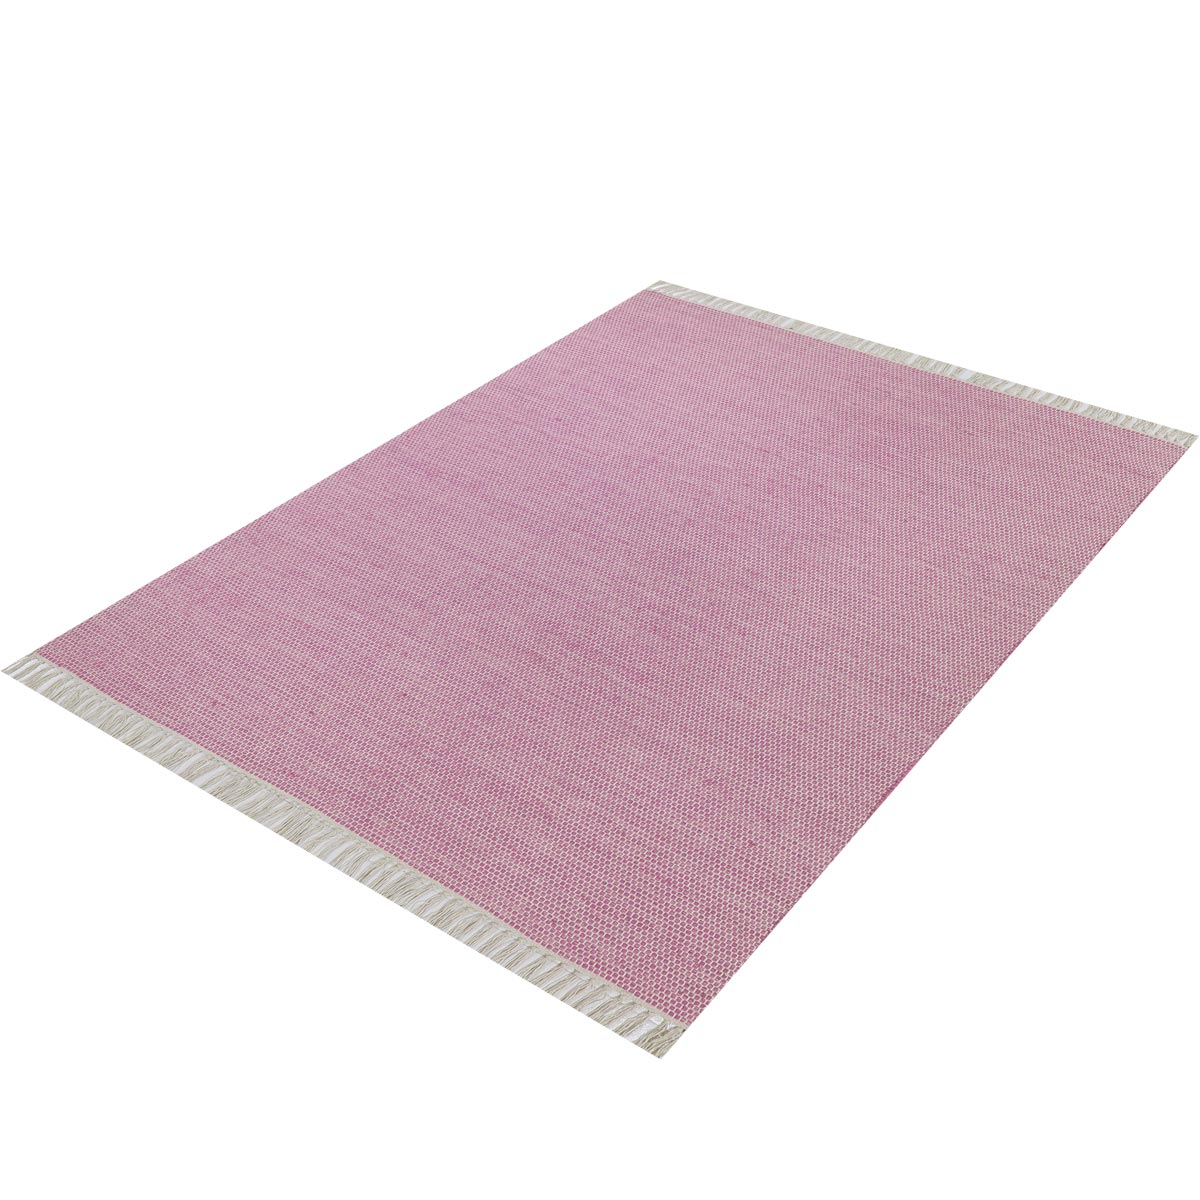 Chicago Rug 01 Dark Pink 3